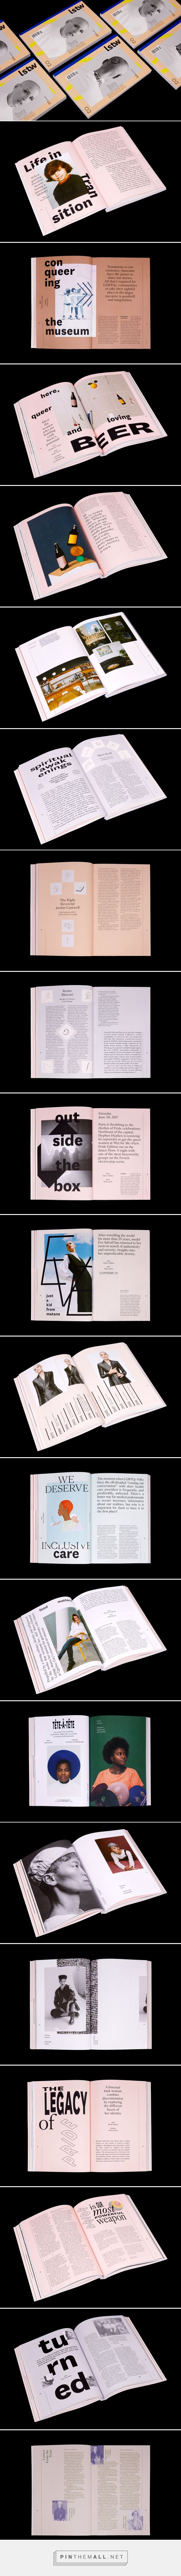 Lez Spread The Word MAG on Behance... - a grouped images picture - Pin Them All